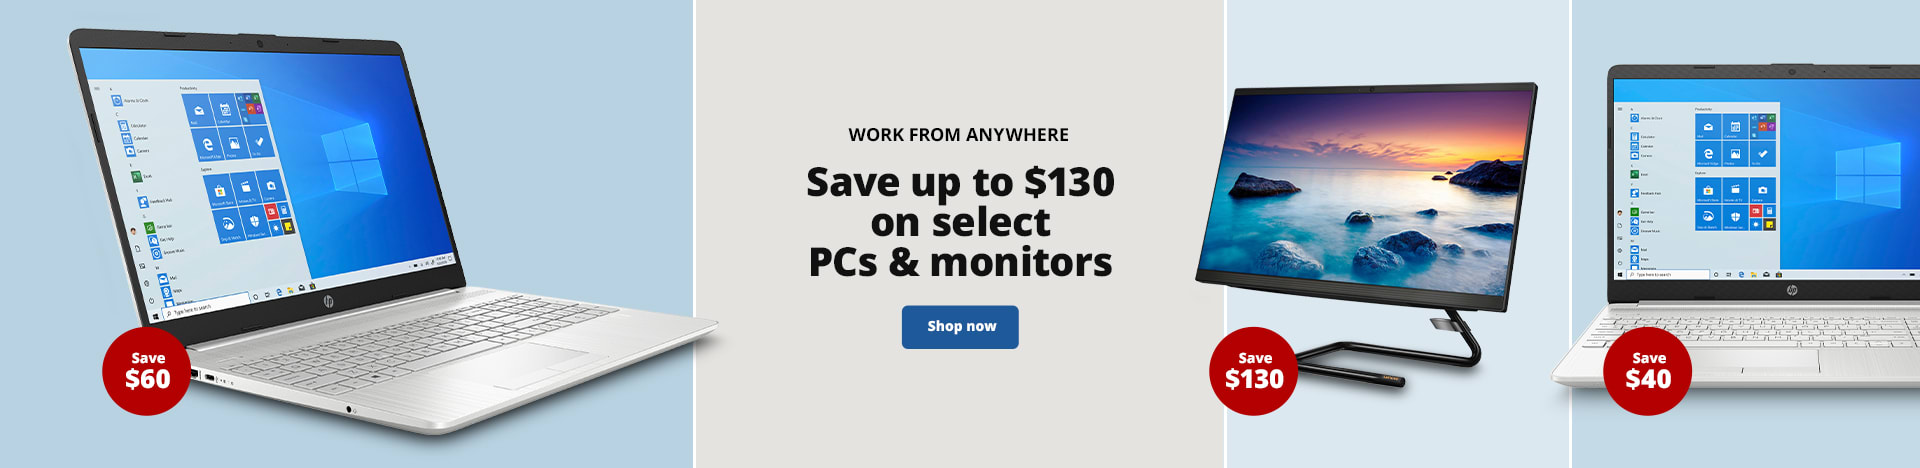 Work From Anywhere. Save up to $130 on select PCs & monitors